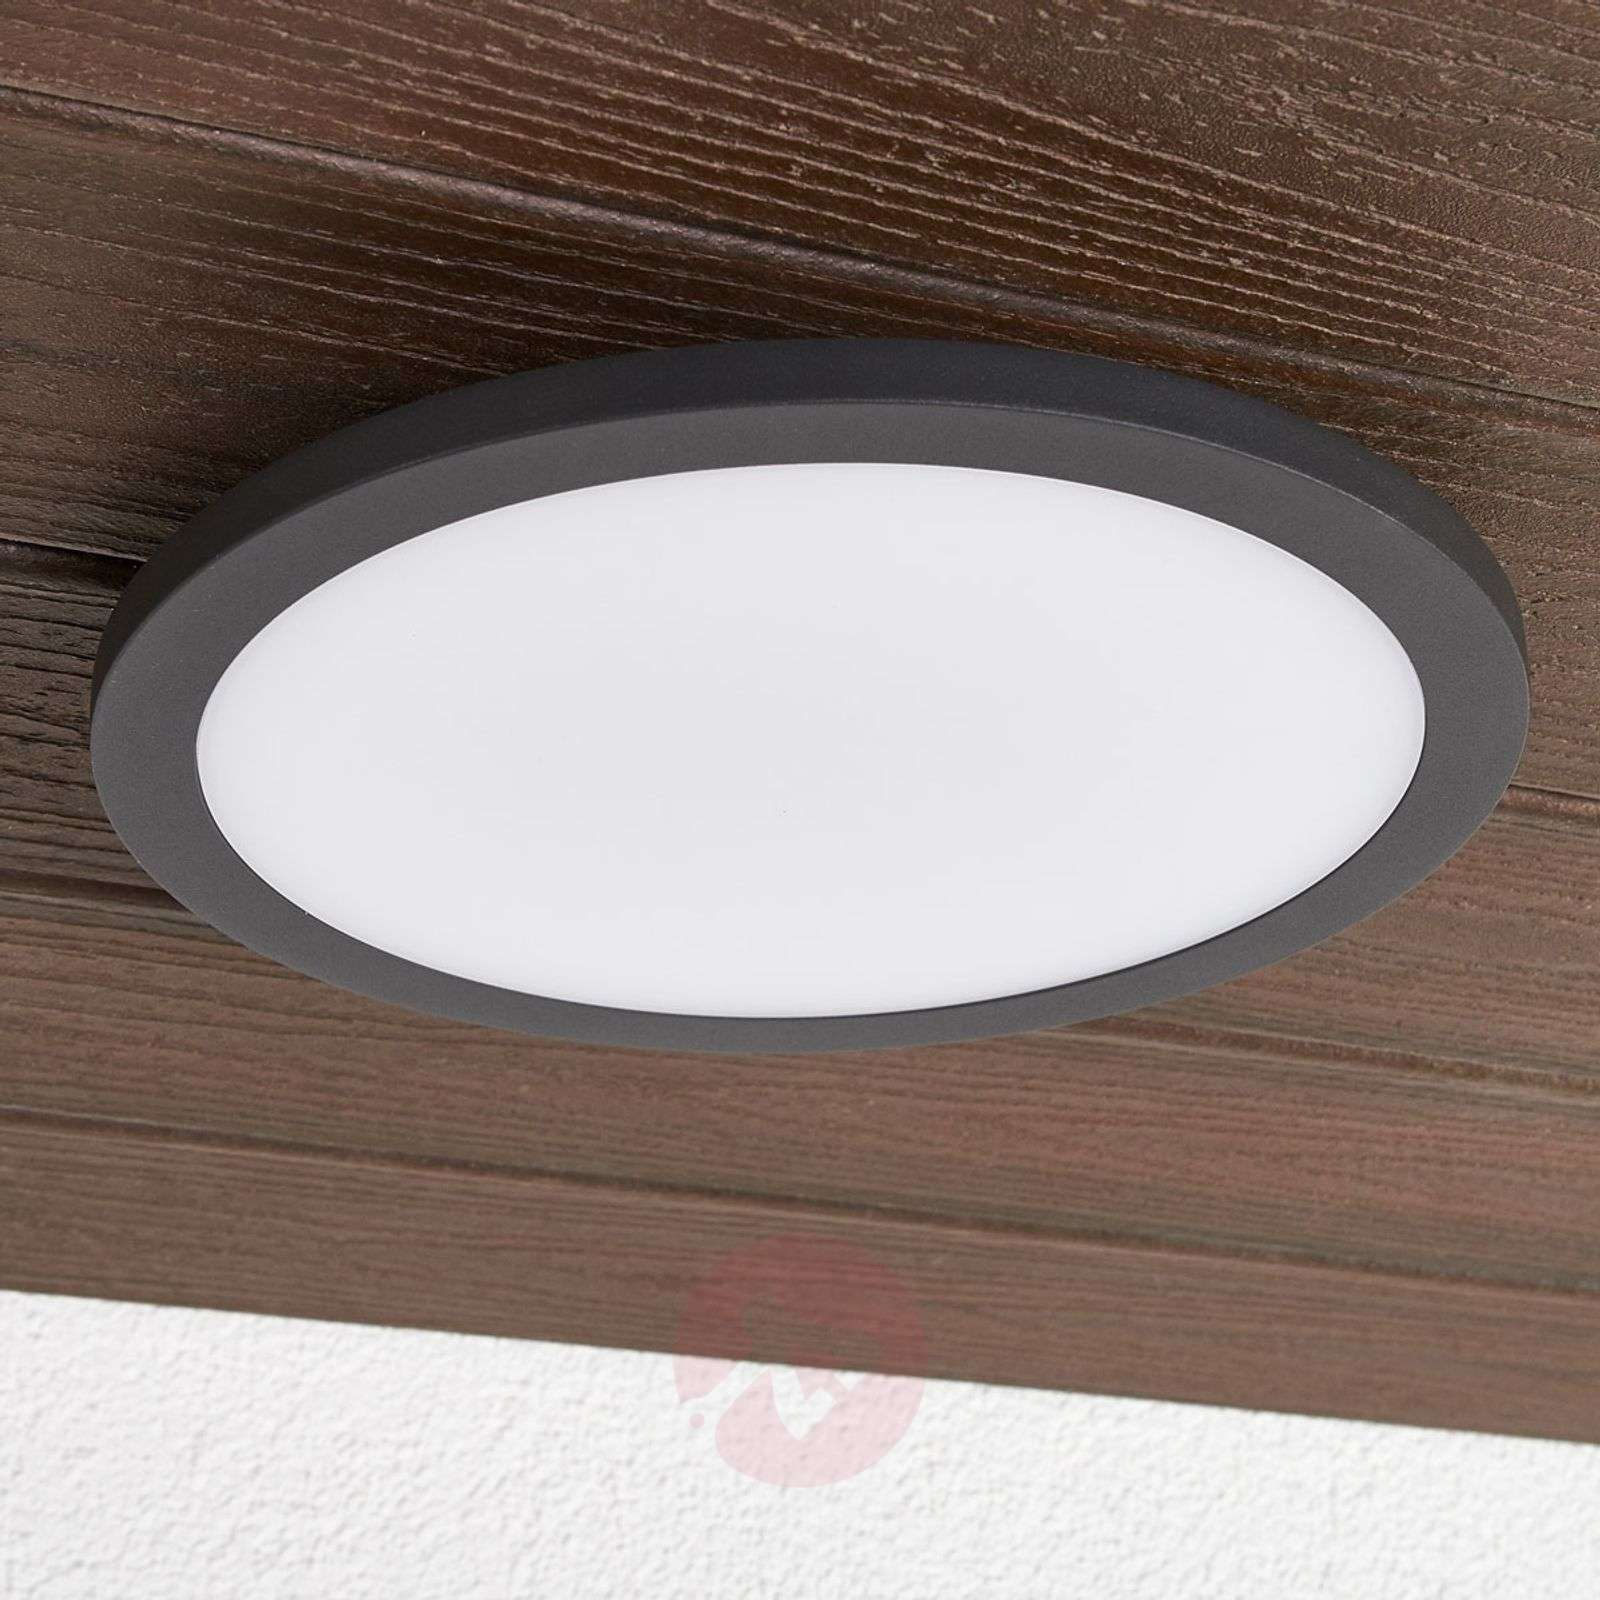 Swell Led Outdoor Ceiling Light Malena With Sensor Download Free Architecture Designs Jebrpmadebymaigaardcom